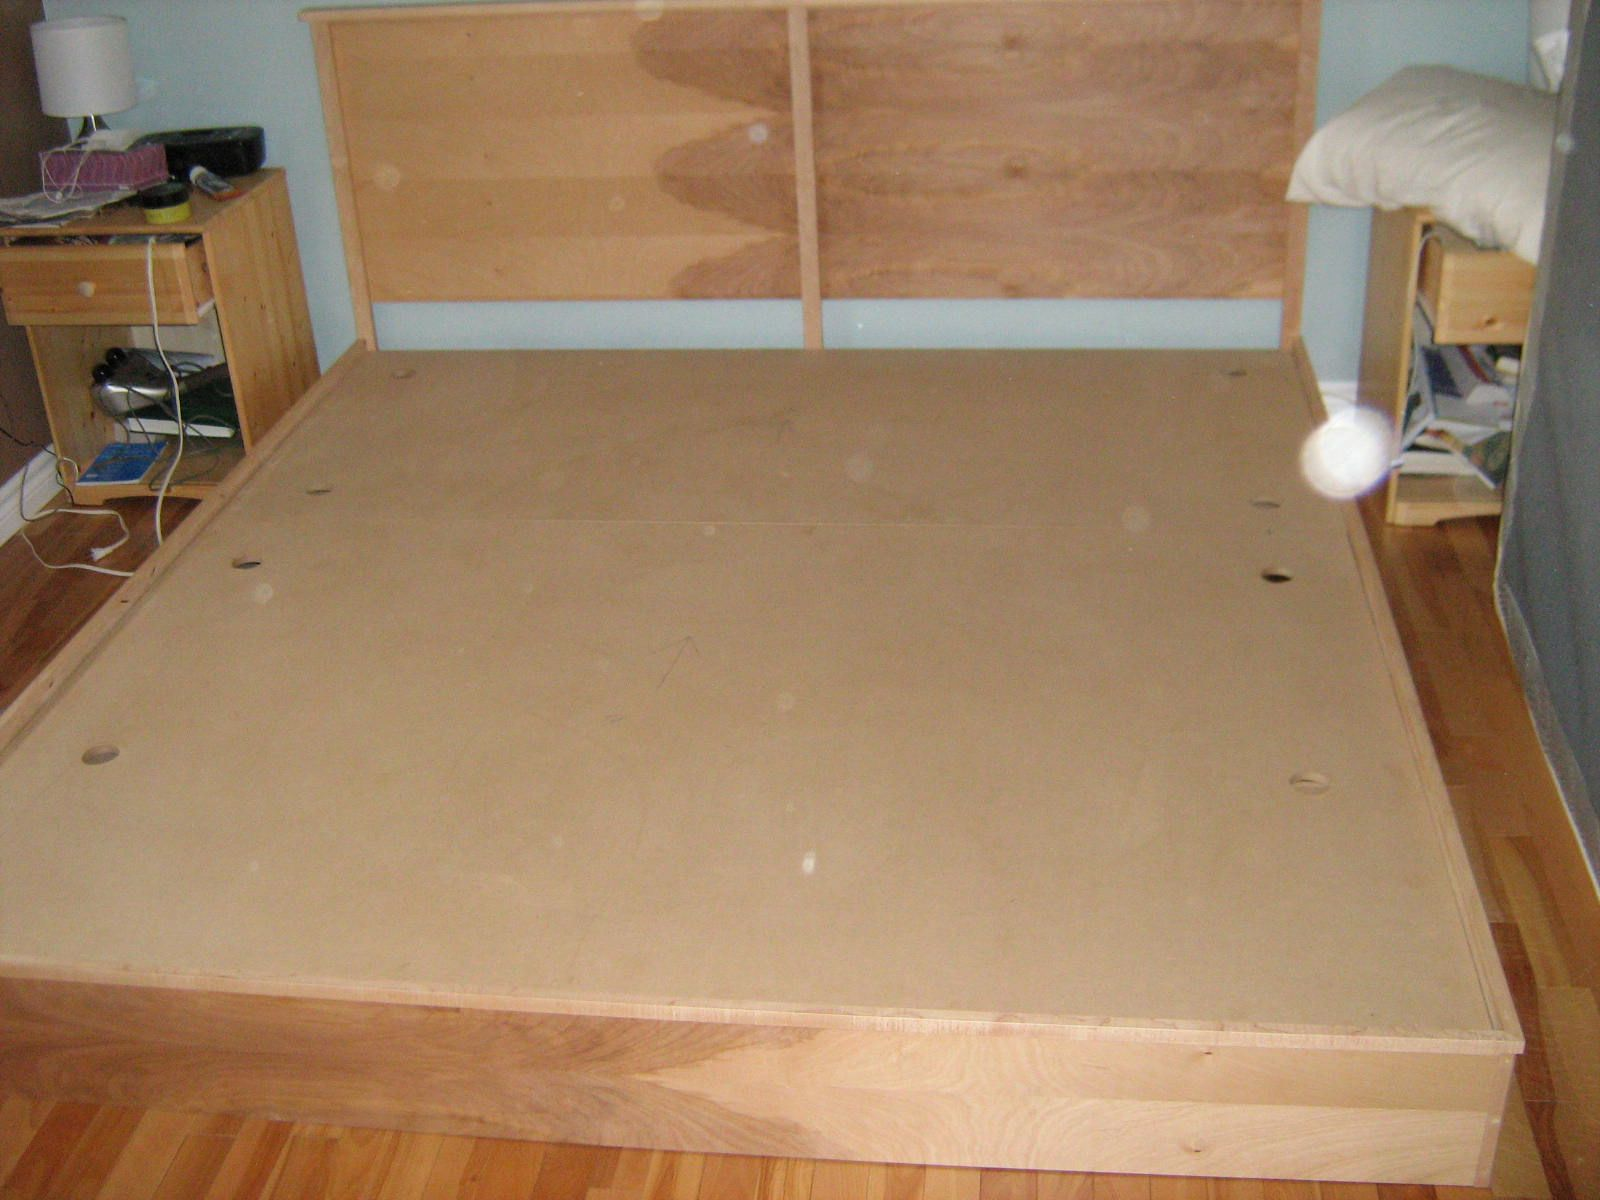 Woodworking King Size Platform Bed Frame With Storage Plans Inventor Pdf Download Free Build A Picnic Table Plans Architectural Woodwork Jobs